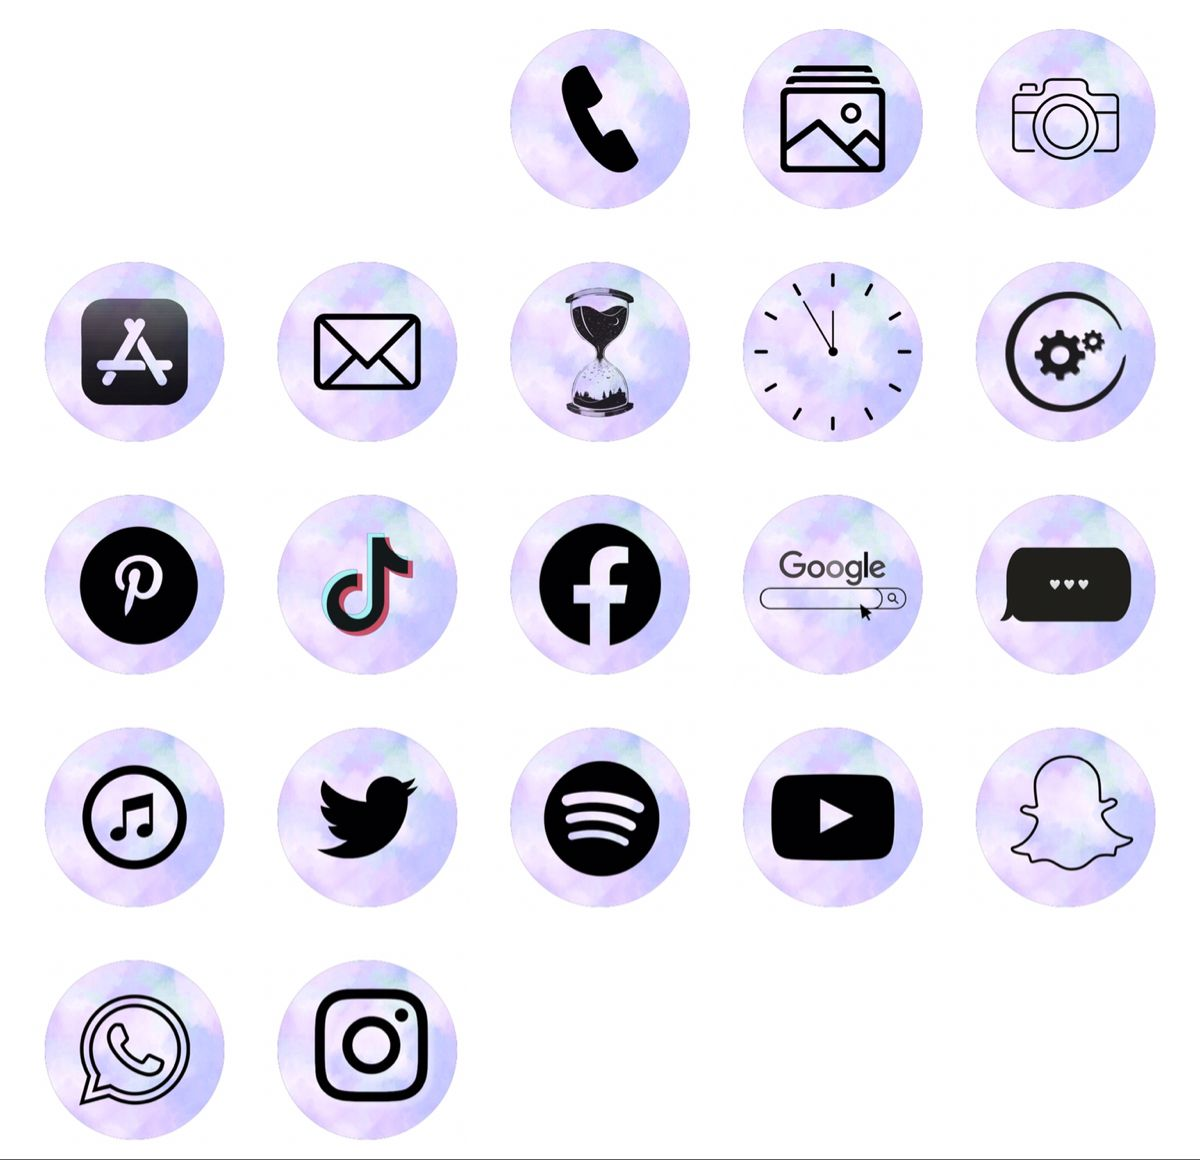 Cute Apps Icons App Icon App Store Icon Iphone Wallpaper Tumblr Aesthetic Iphone wallpaper yellow iphone wallpaper app aesthetic iphone wallpaper apps ring icon cute app iphone layout iphone app design ios app icon. cute apps icons app icon app store